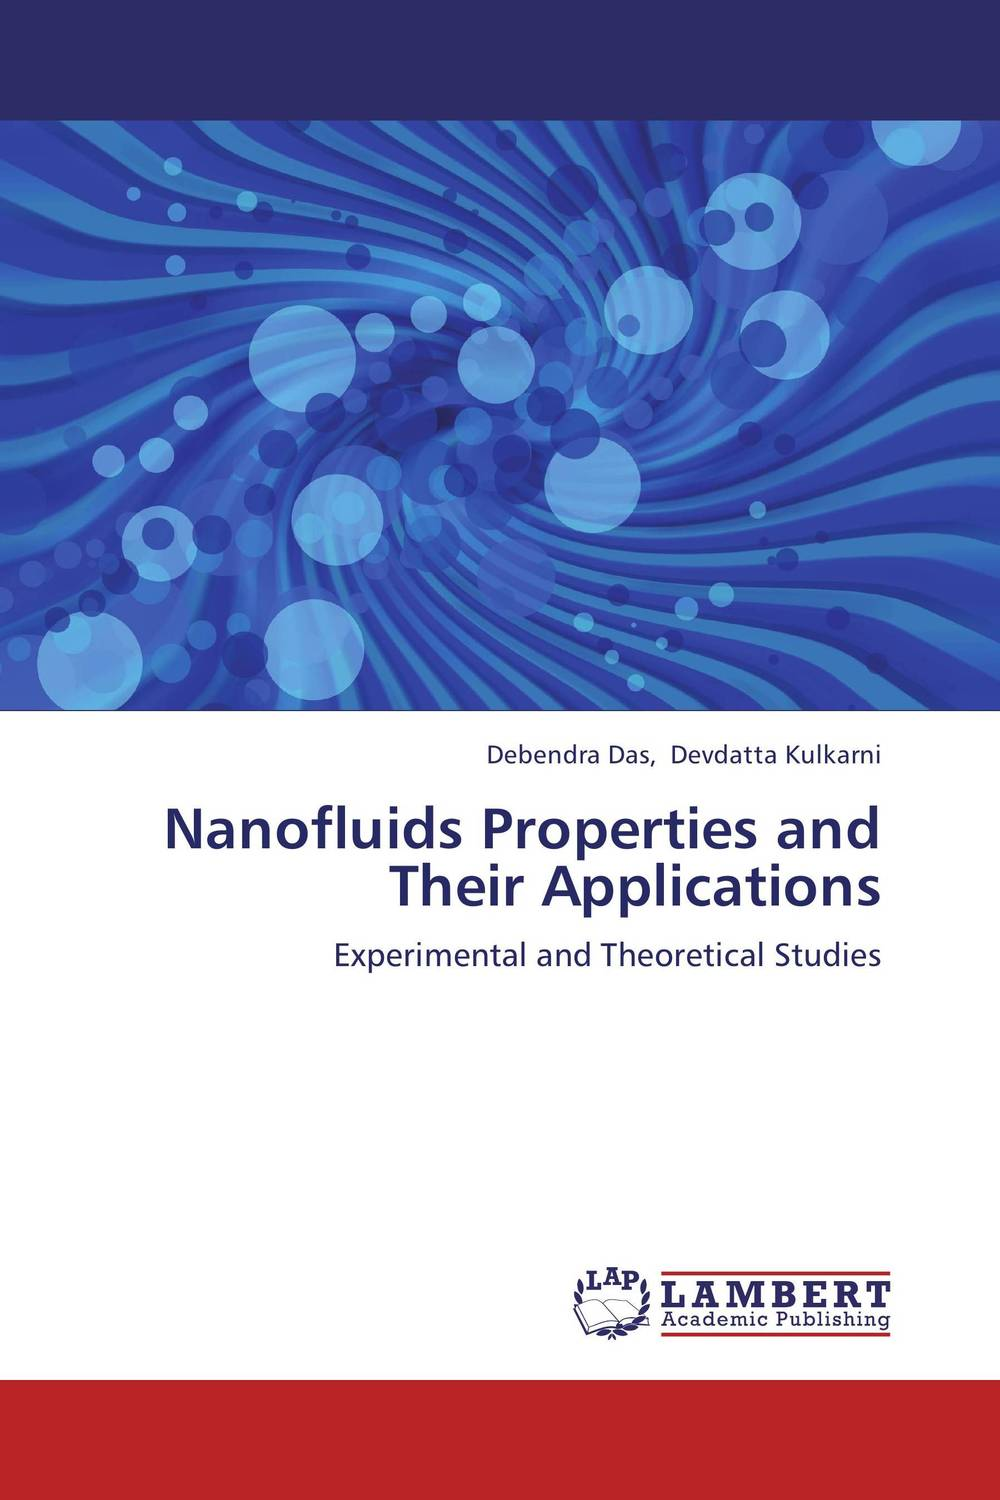 Nanofluids Properties and Their Applications add501a antifreeze battery fluids refractometer time limit promotion indicate freezing point for propylene and ethylene glycol